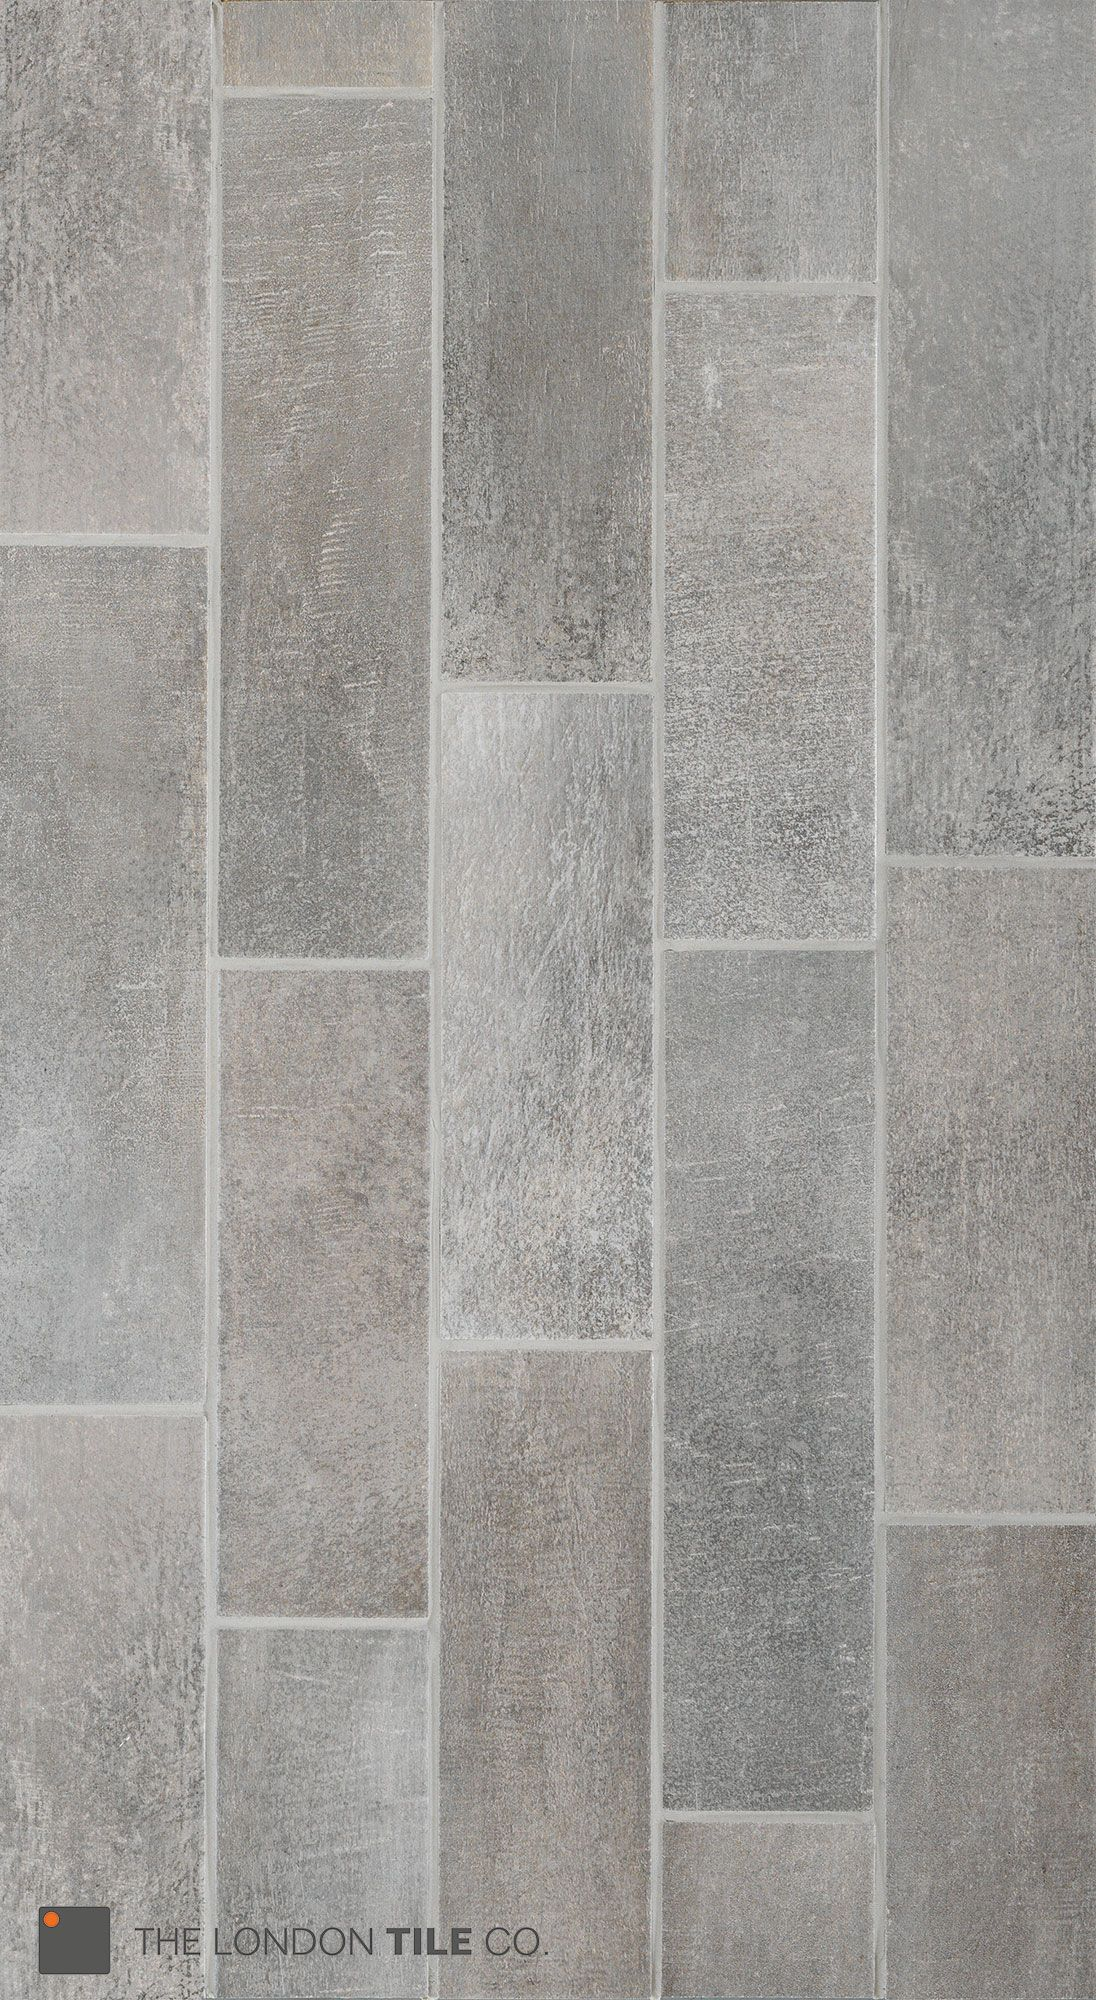 Jamestown grey porcelain tiles porcelain porcelain tile and ranges jamestown grey porcelain wall floor tiles dailygadgetfo Choice Image